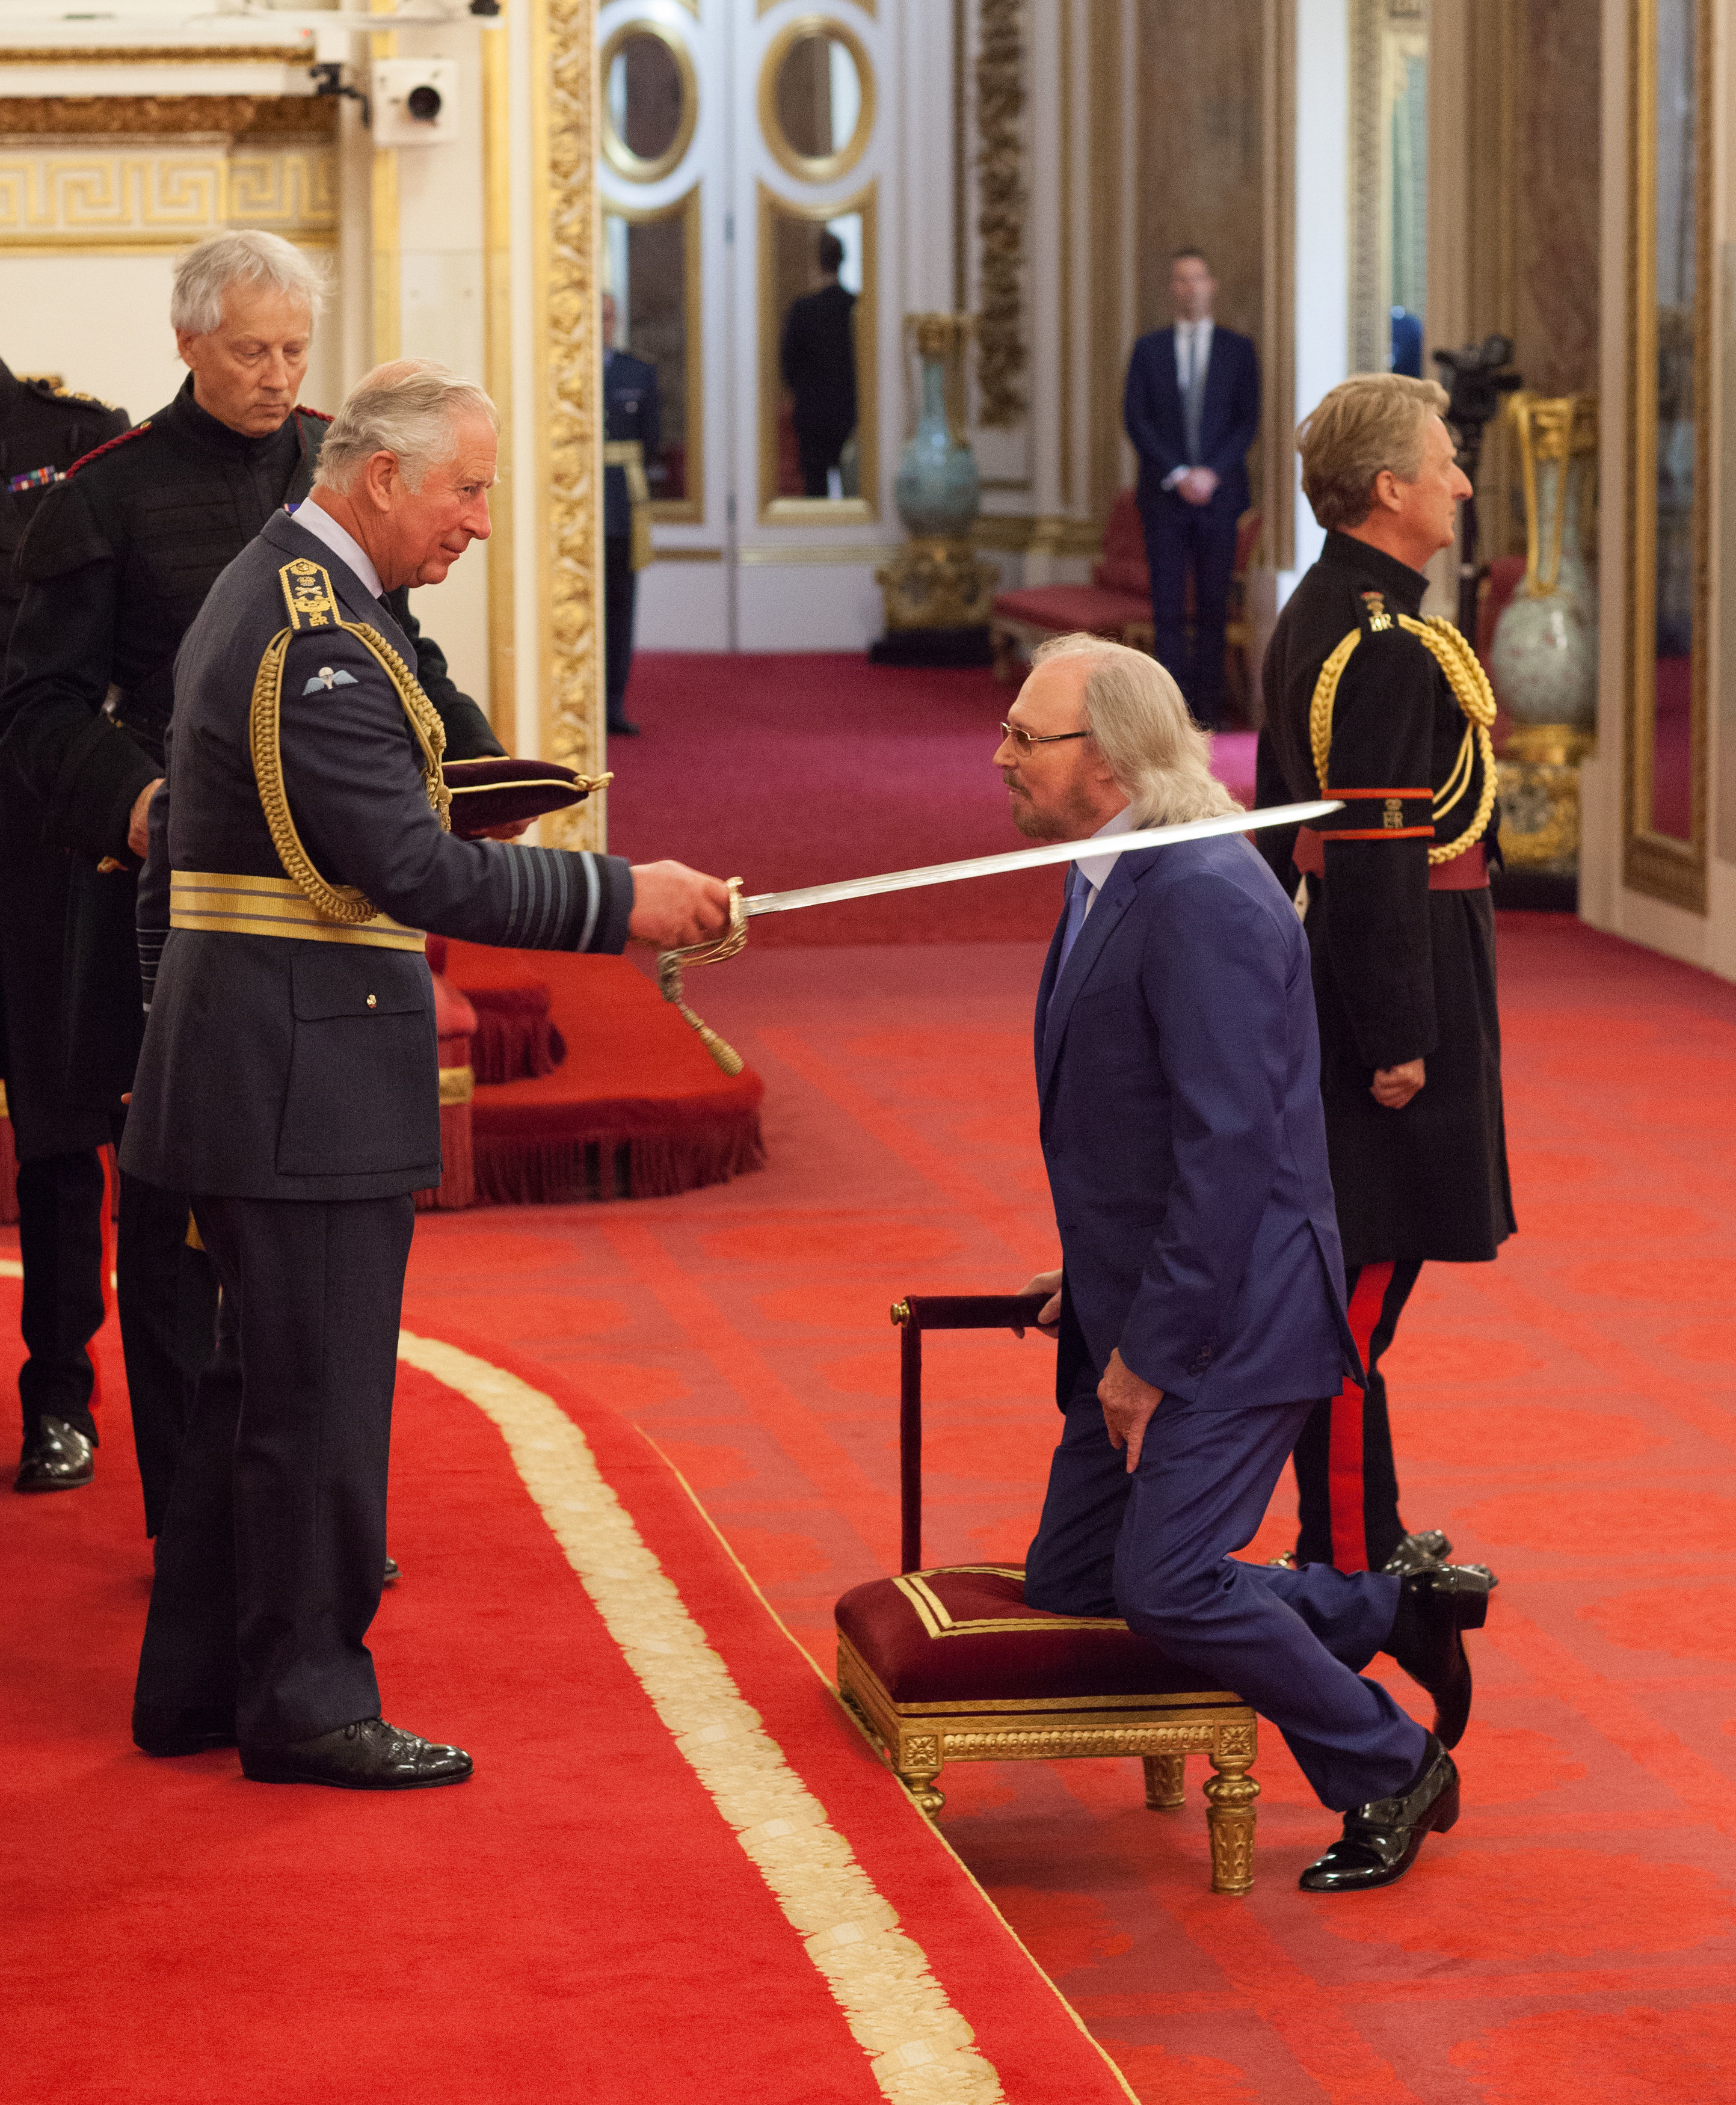 Bee Gees' Barry Gibb honored at Buckingham Palace with knighthood